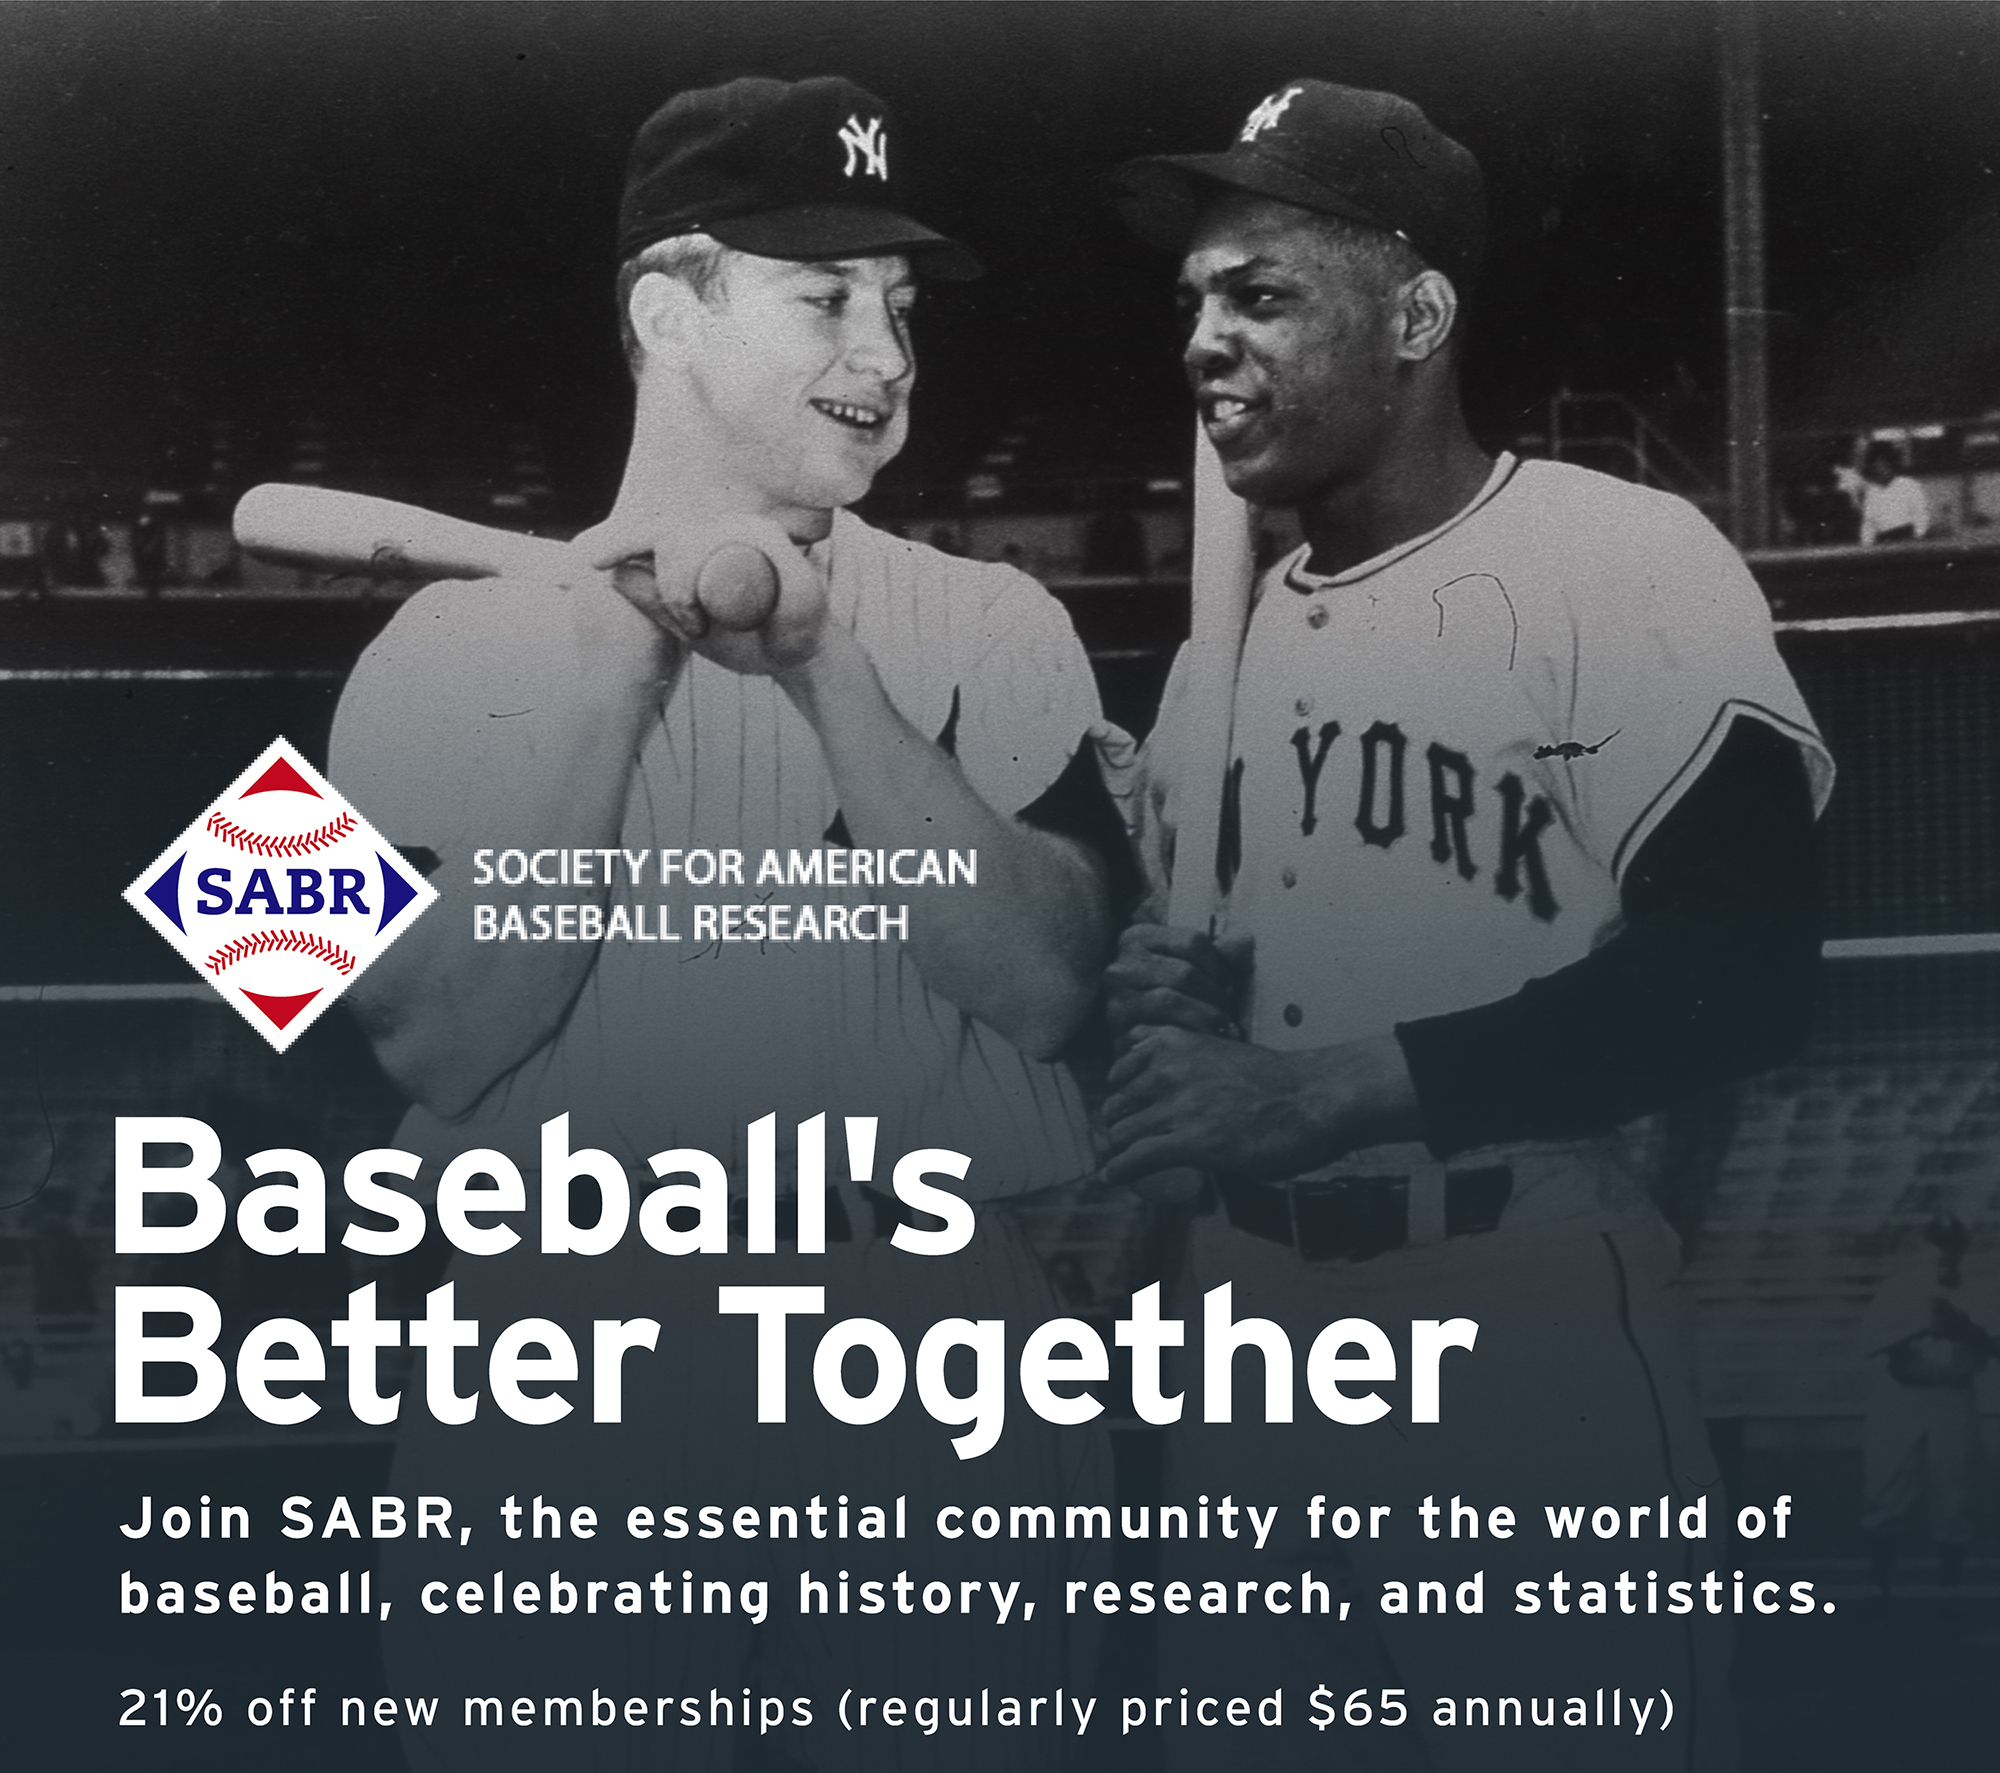 Baseball's Better Together